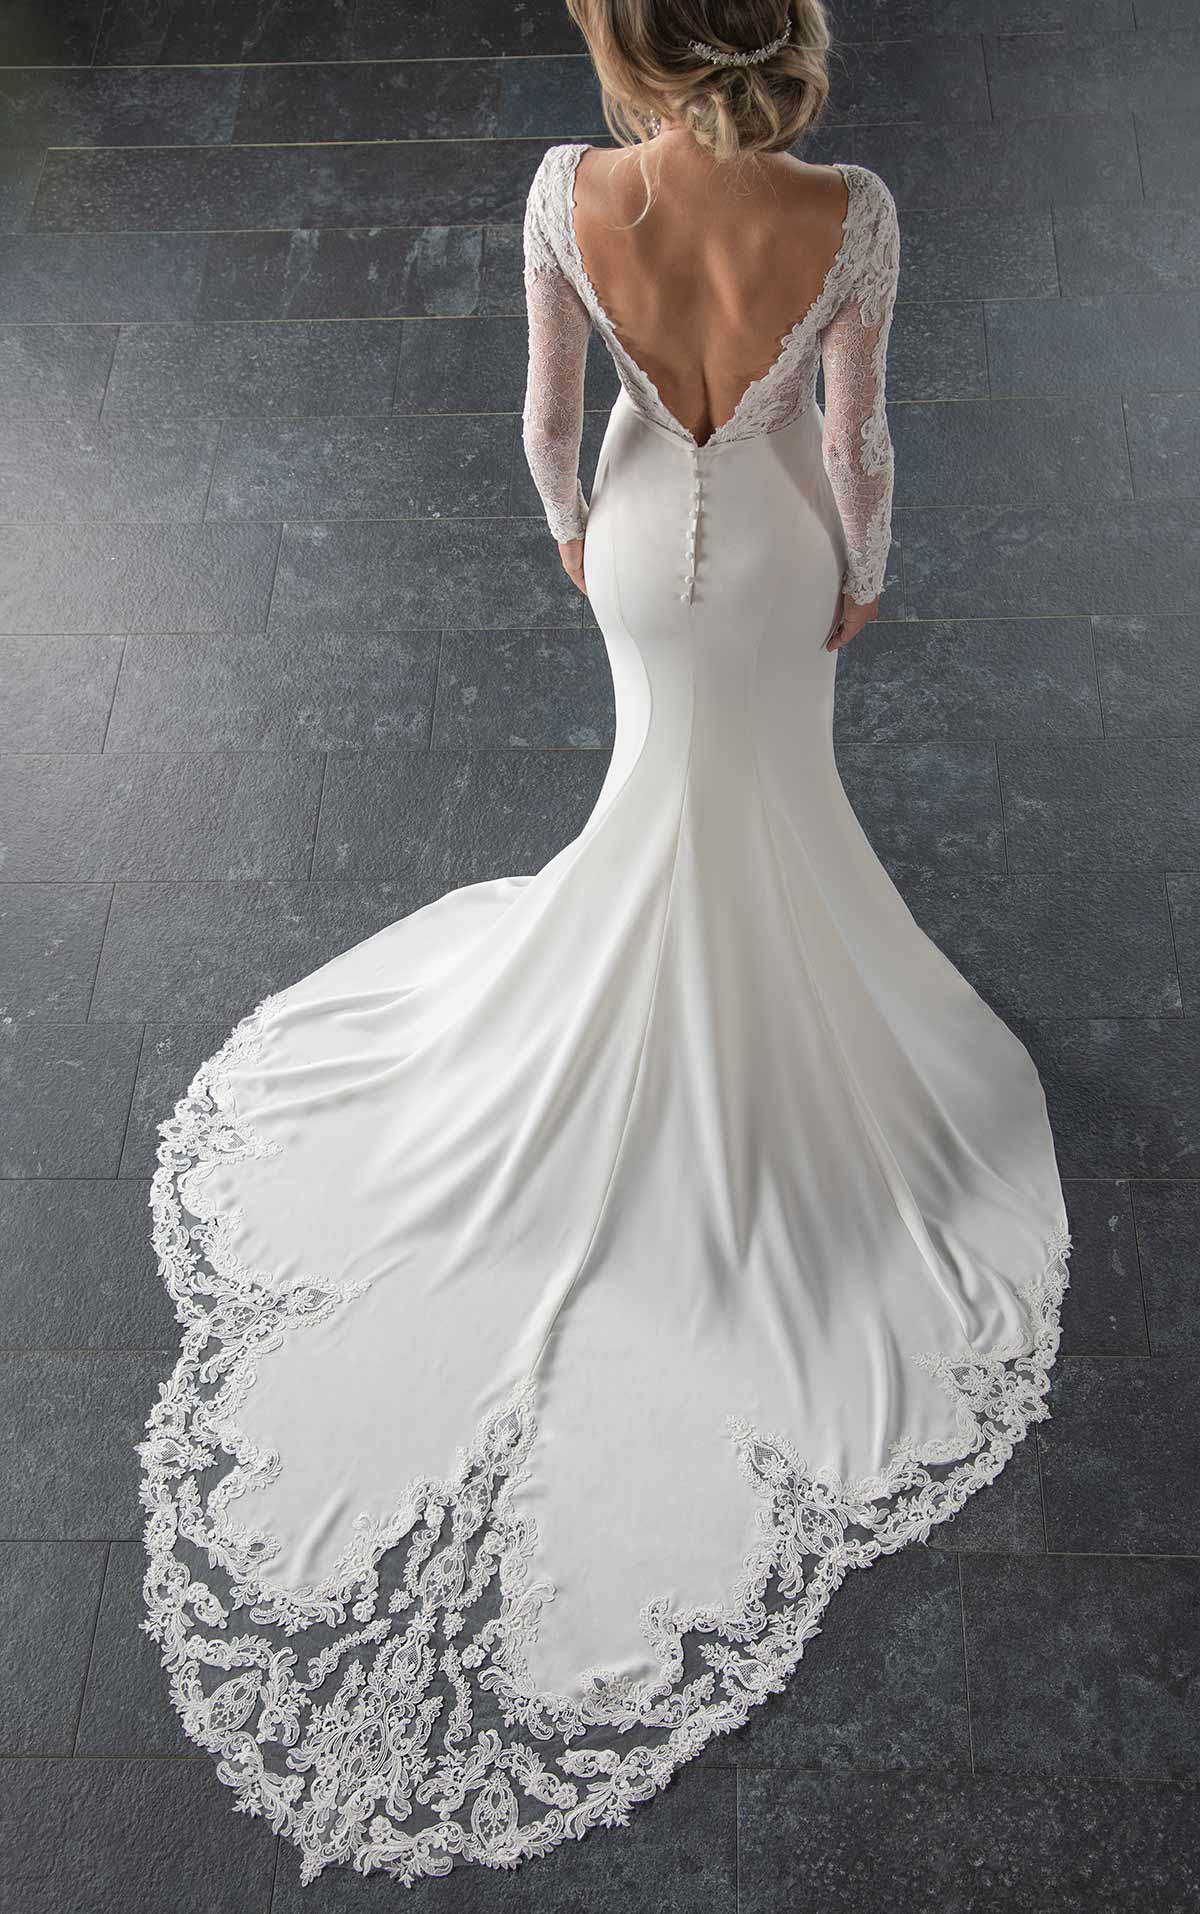 Bon Bon Belle has one of the largest Stella York Wedding Dress Collections in Wisconsin